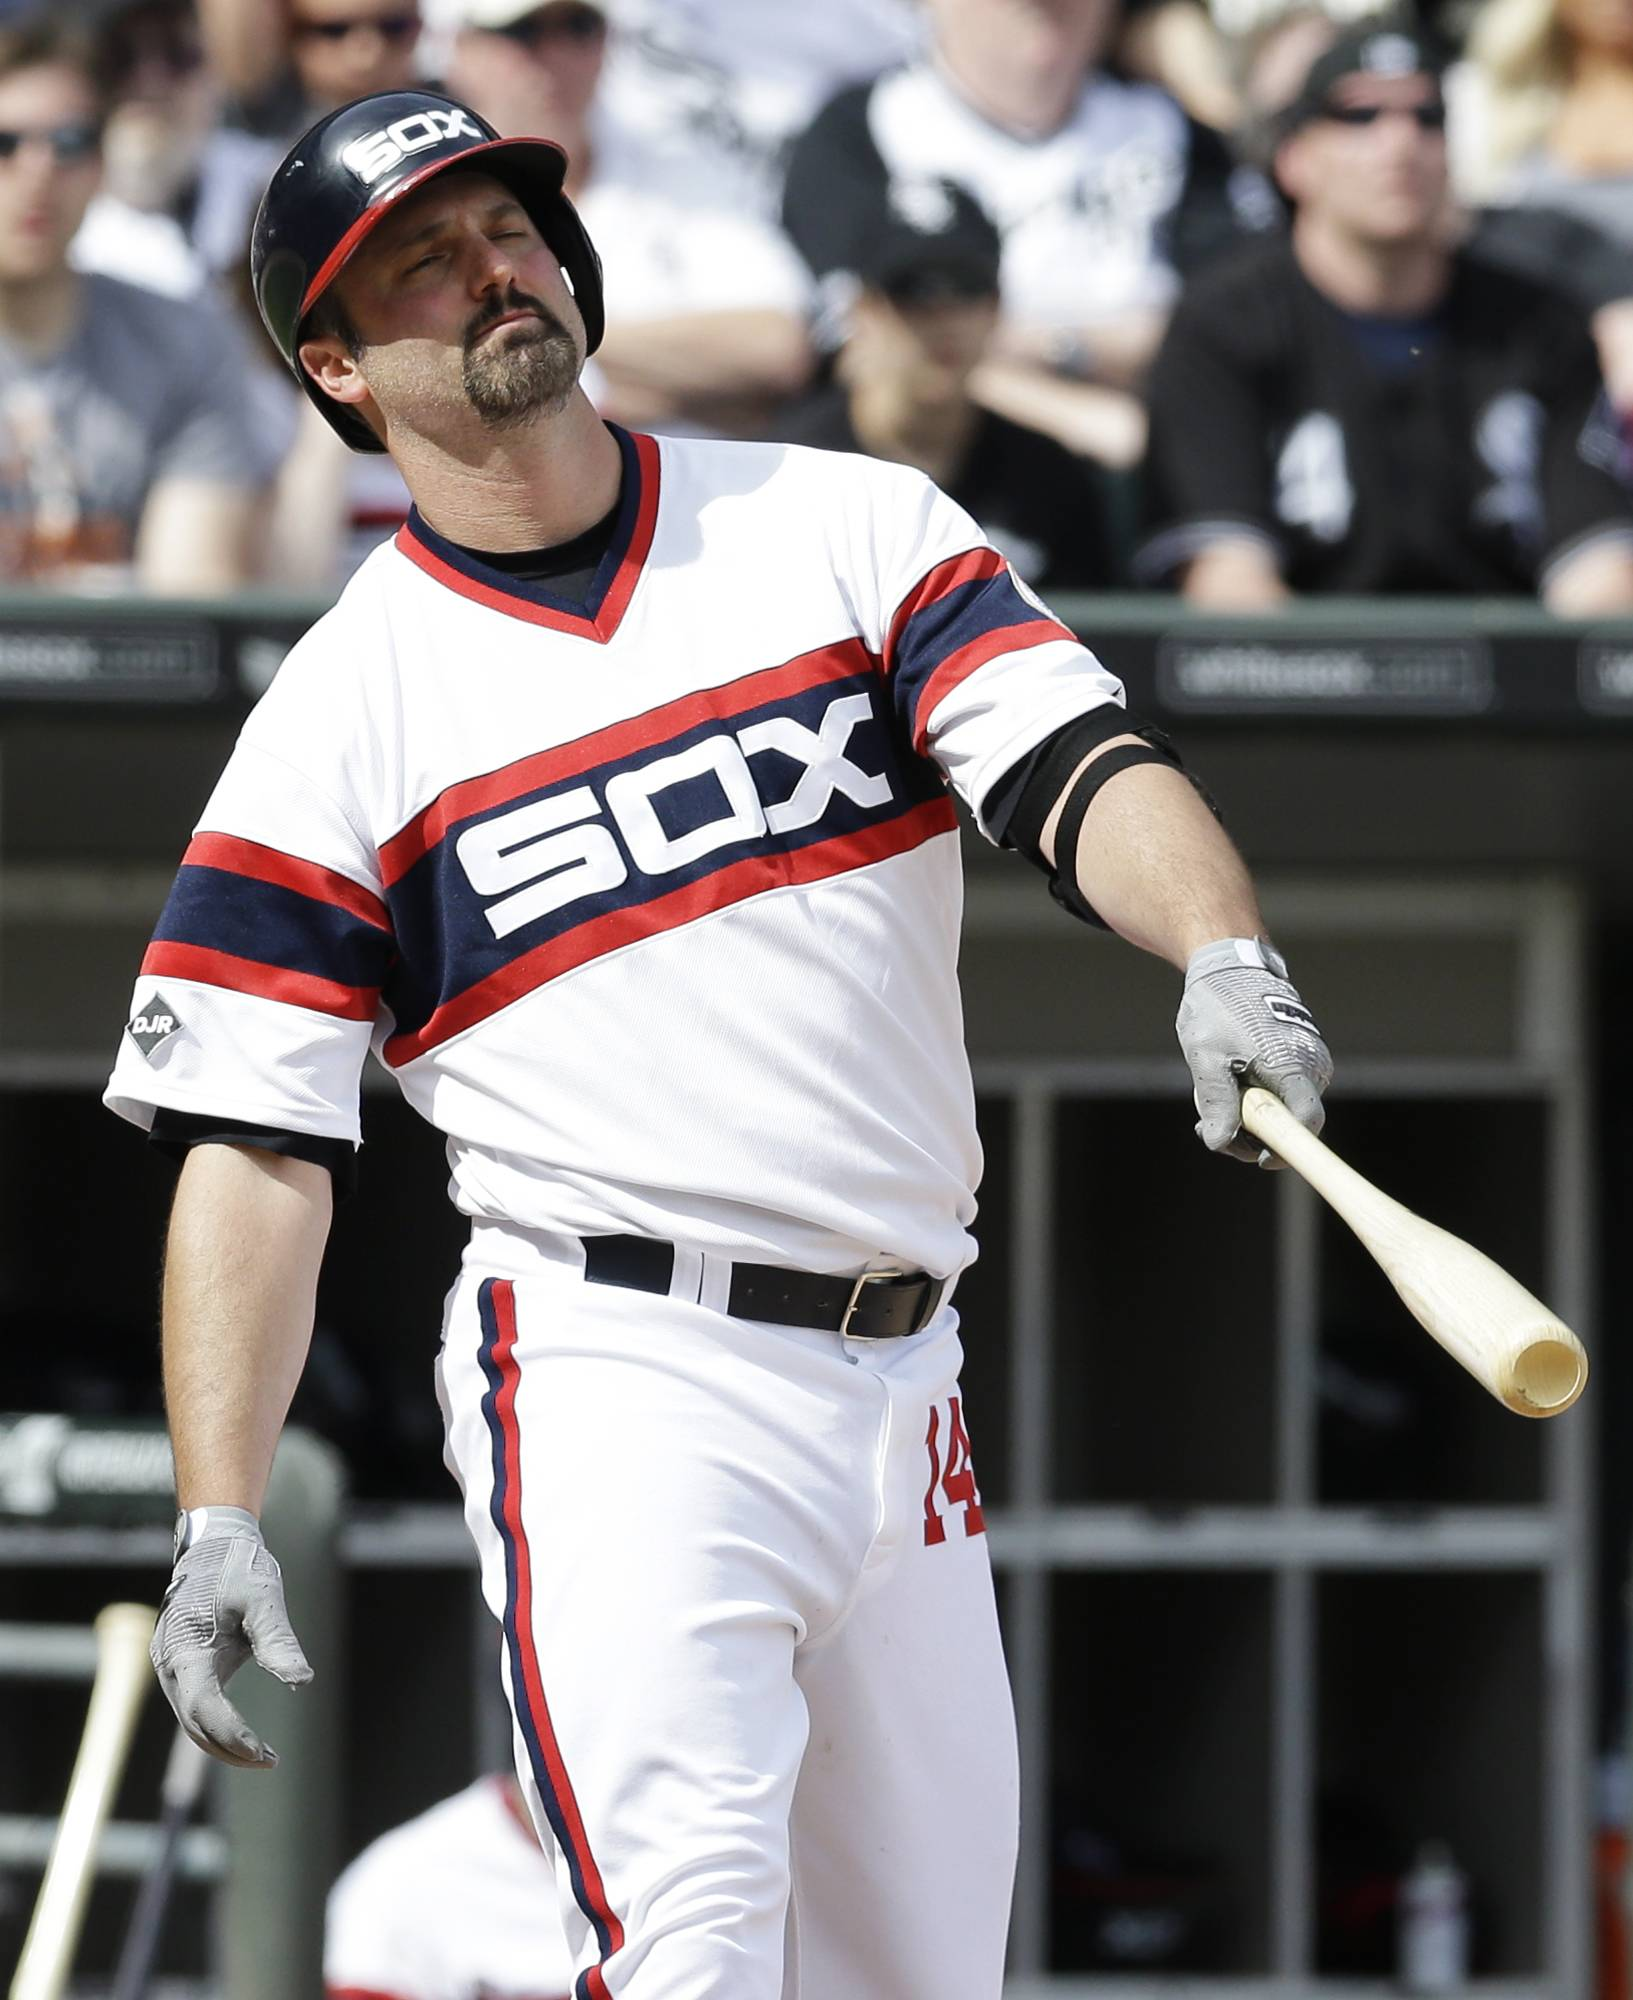 Chicago White Sox's Paul Konerko reacts after being called out on strikes during the ninth inning of a baseball game against the New York Yankees in Chicago on Saturday, May 24, 2014. The Yankees won 4-3.